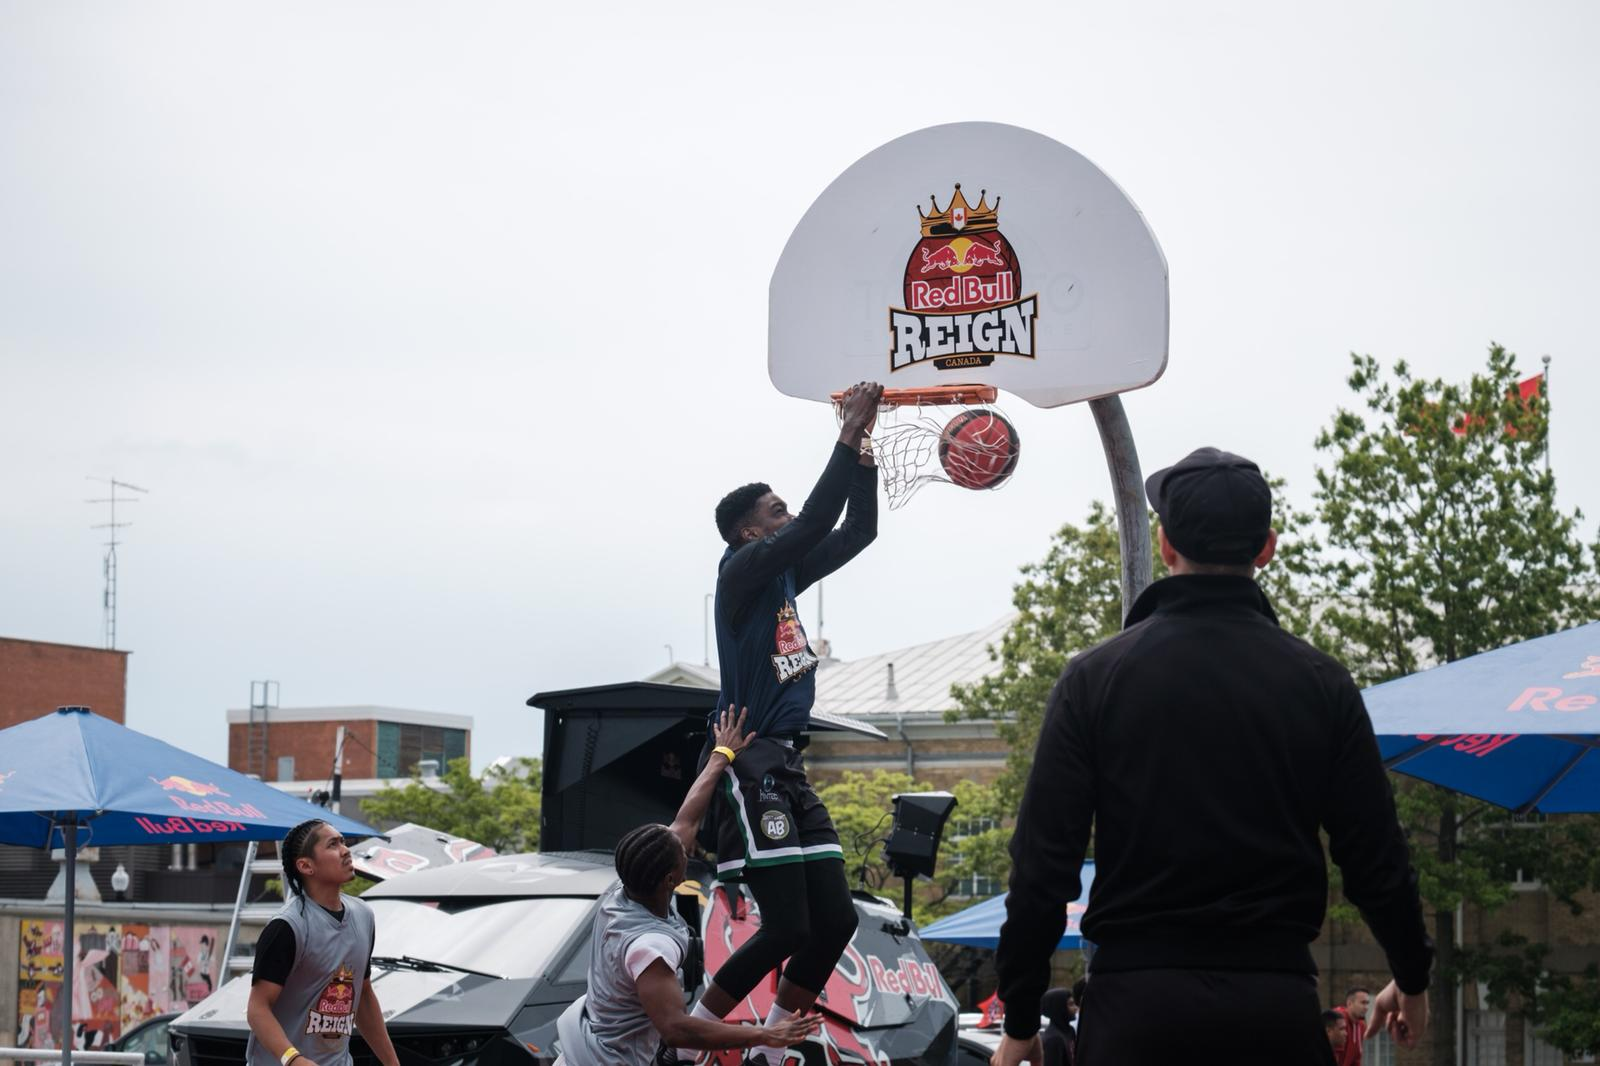 Red Bull Reign 3 on 3 National and World Finals at The Bentway Labour Day Weekend